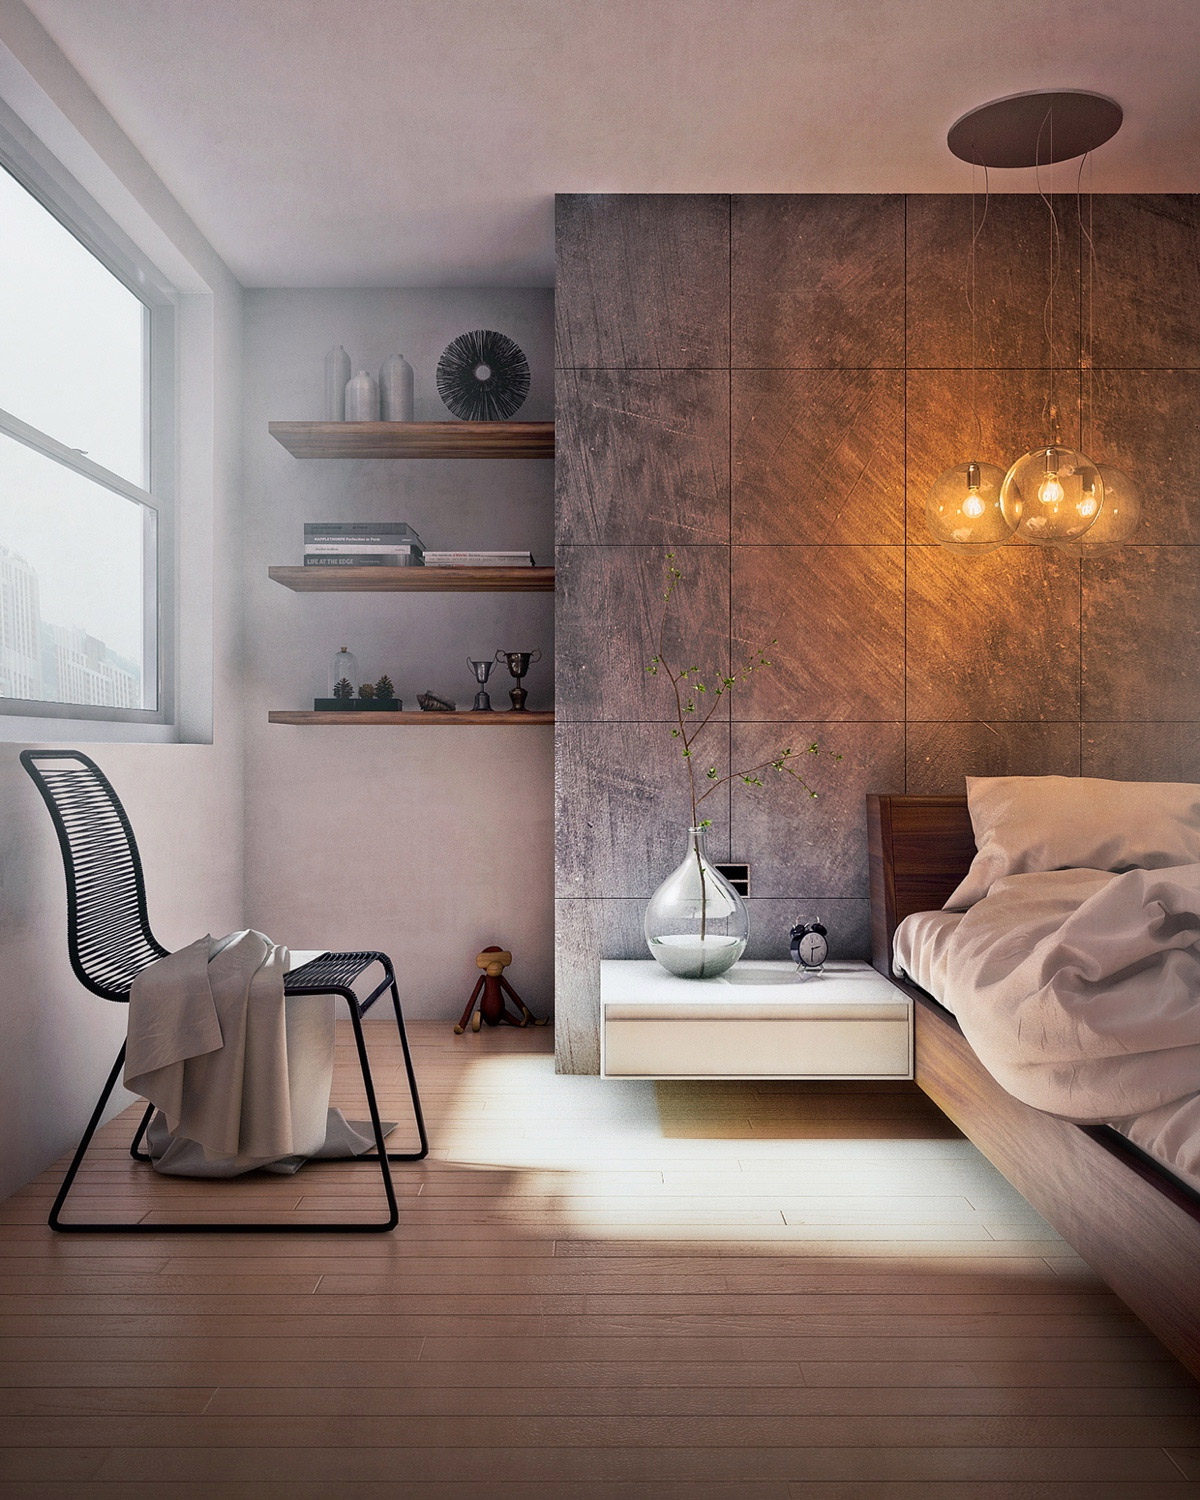 Concrete Wall Designs 30 Striking Bedrooms That Use Concrete - concrete walls design ideas